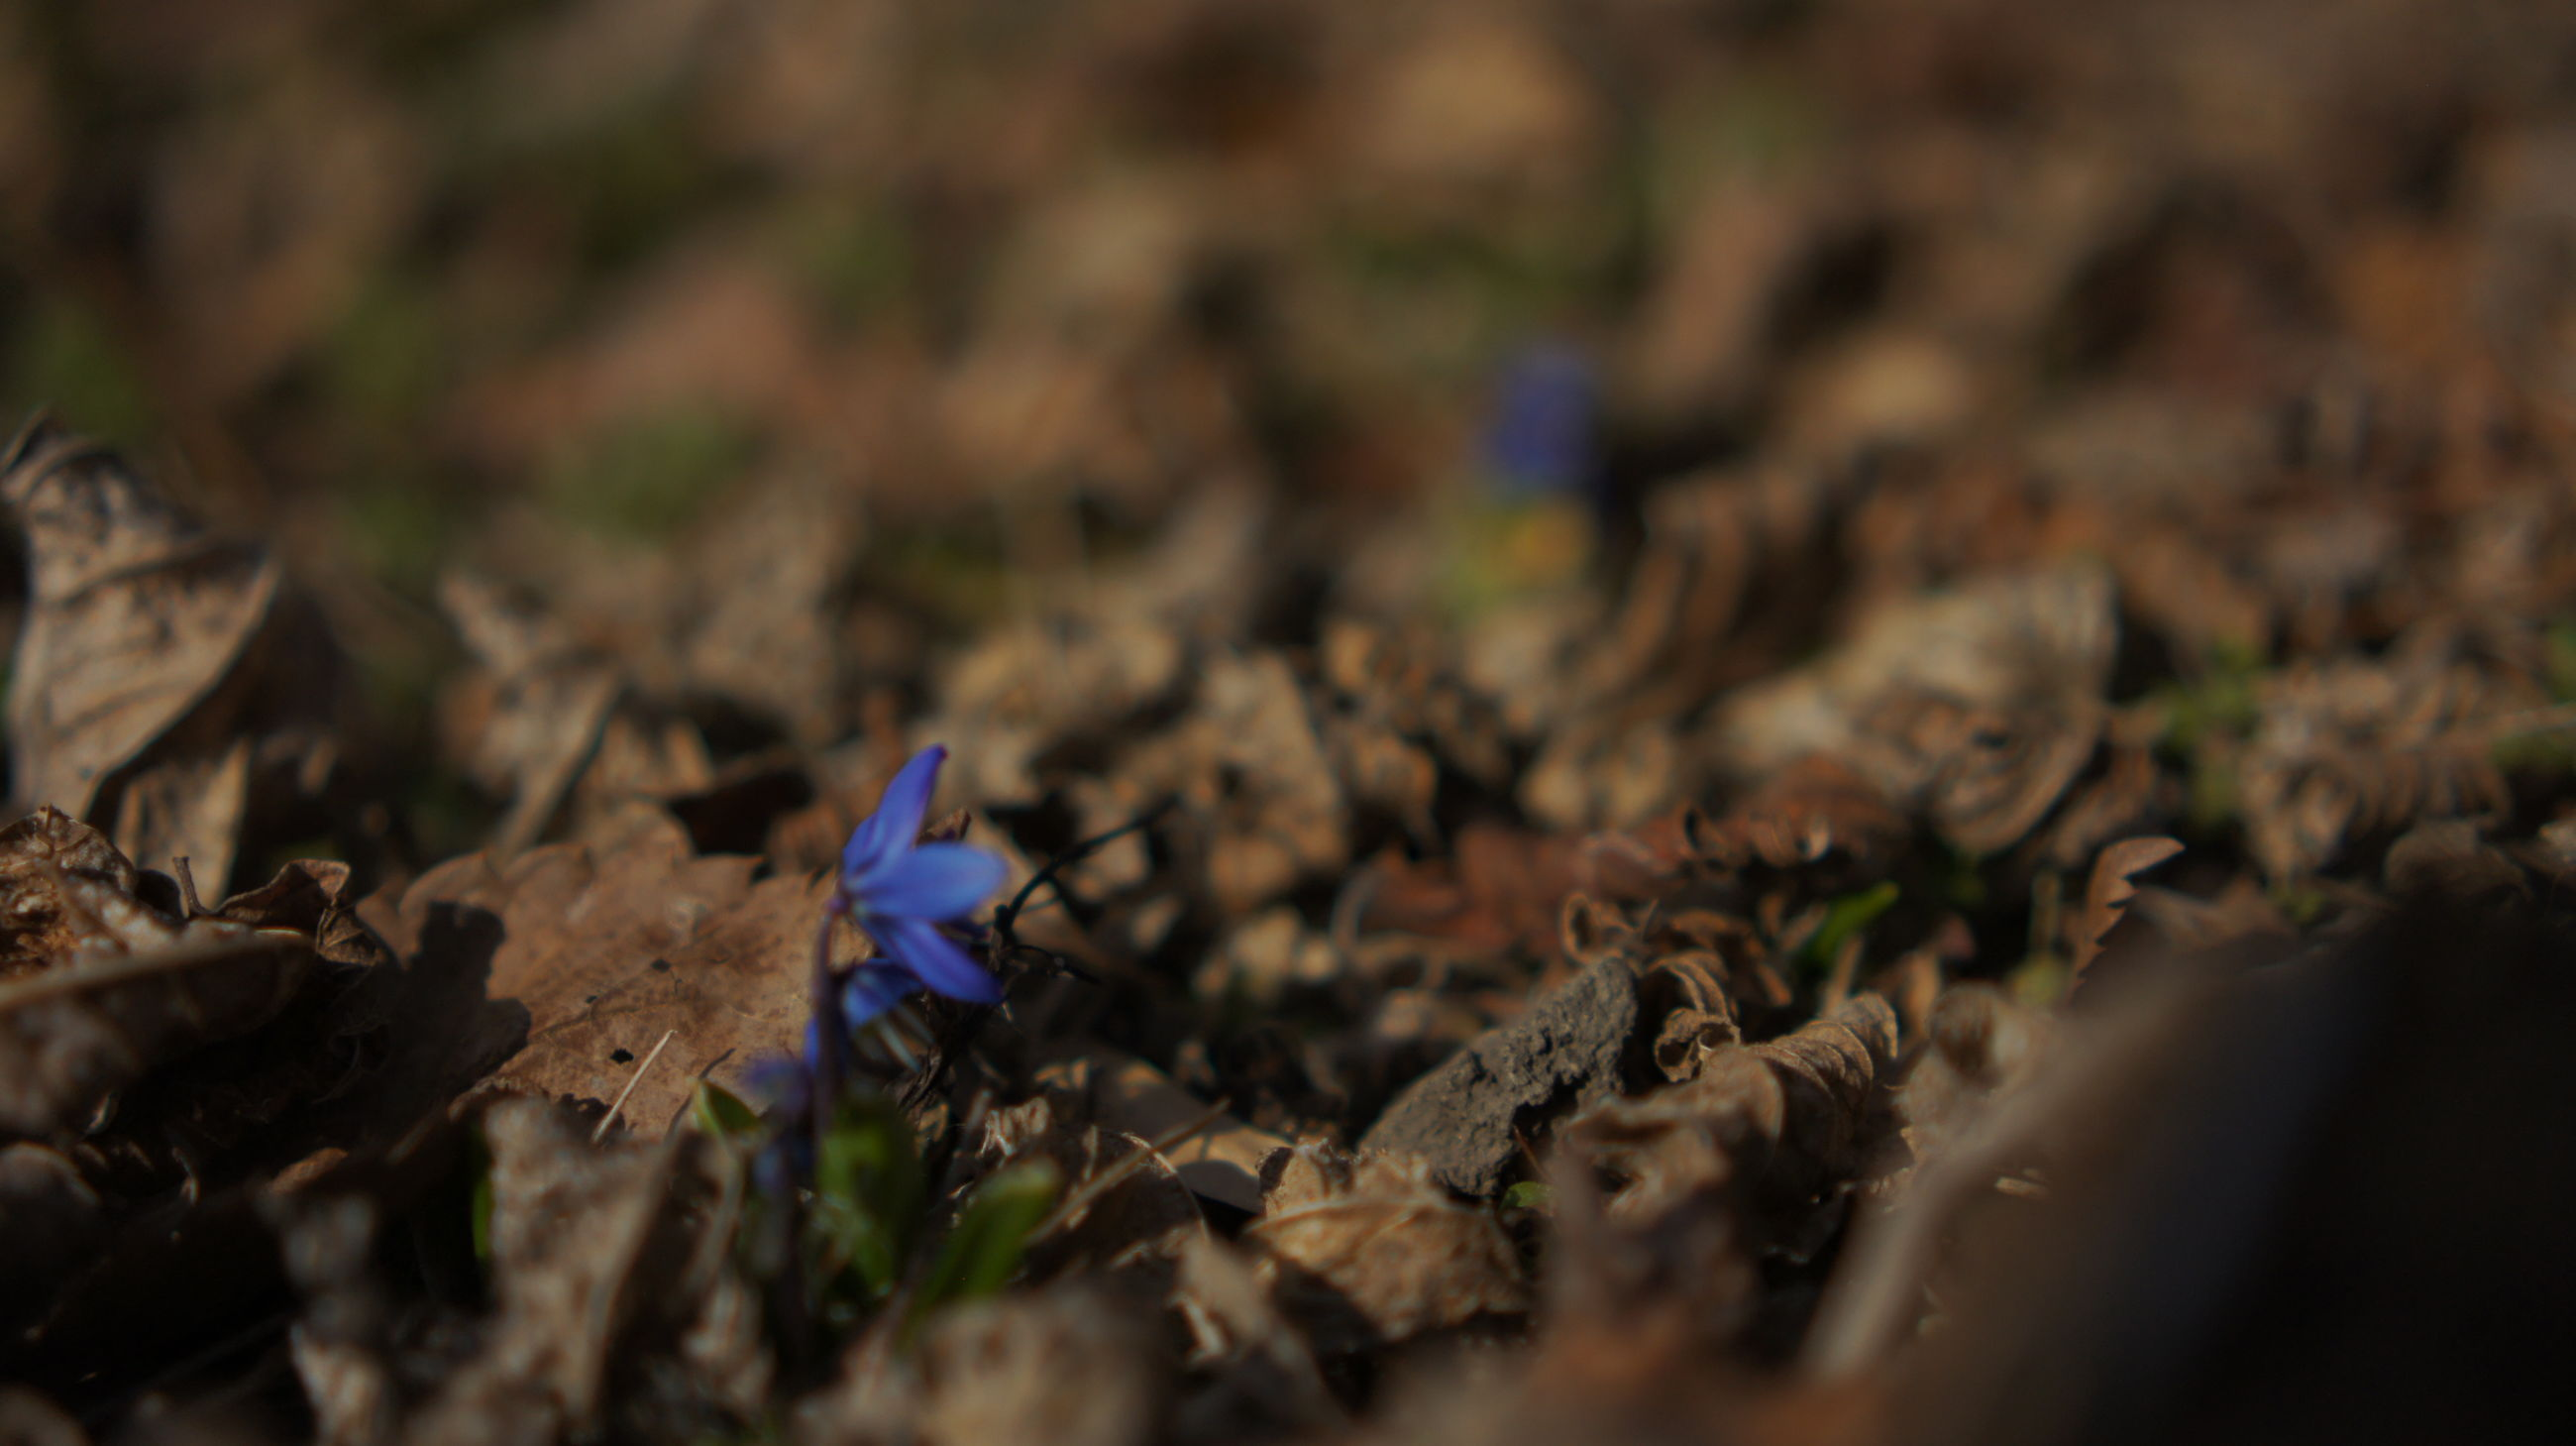 selective focus, dry, close-up, nature, field, growth, plant, leaf, focus on foreground, fragility, ground, fallen, outdoors, beauty in nature, day, no people, tranquility, surface level, high angle view, autumn